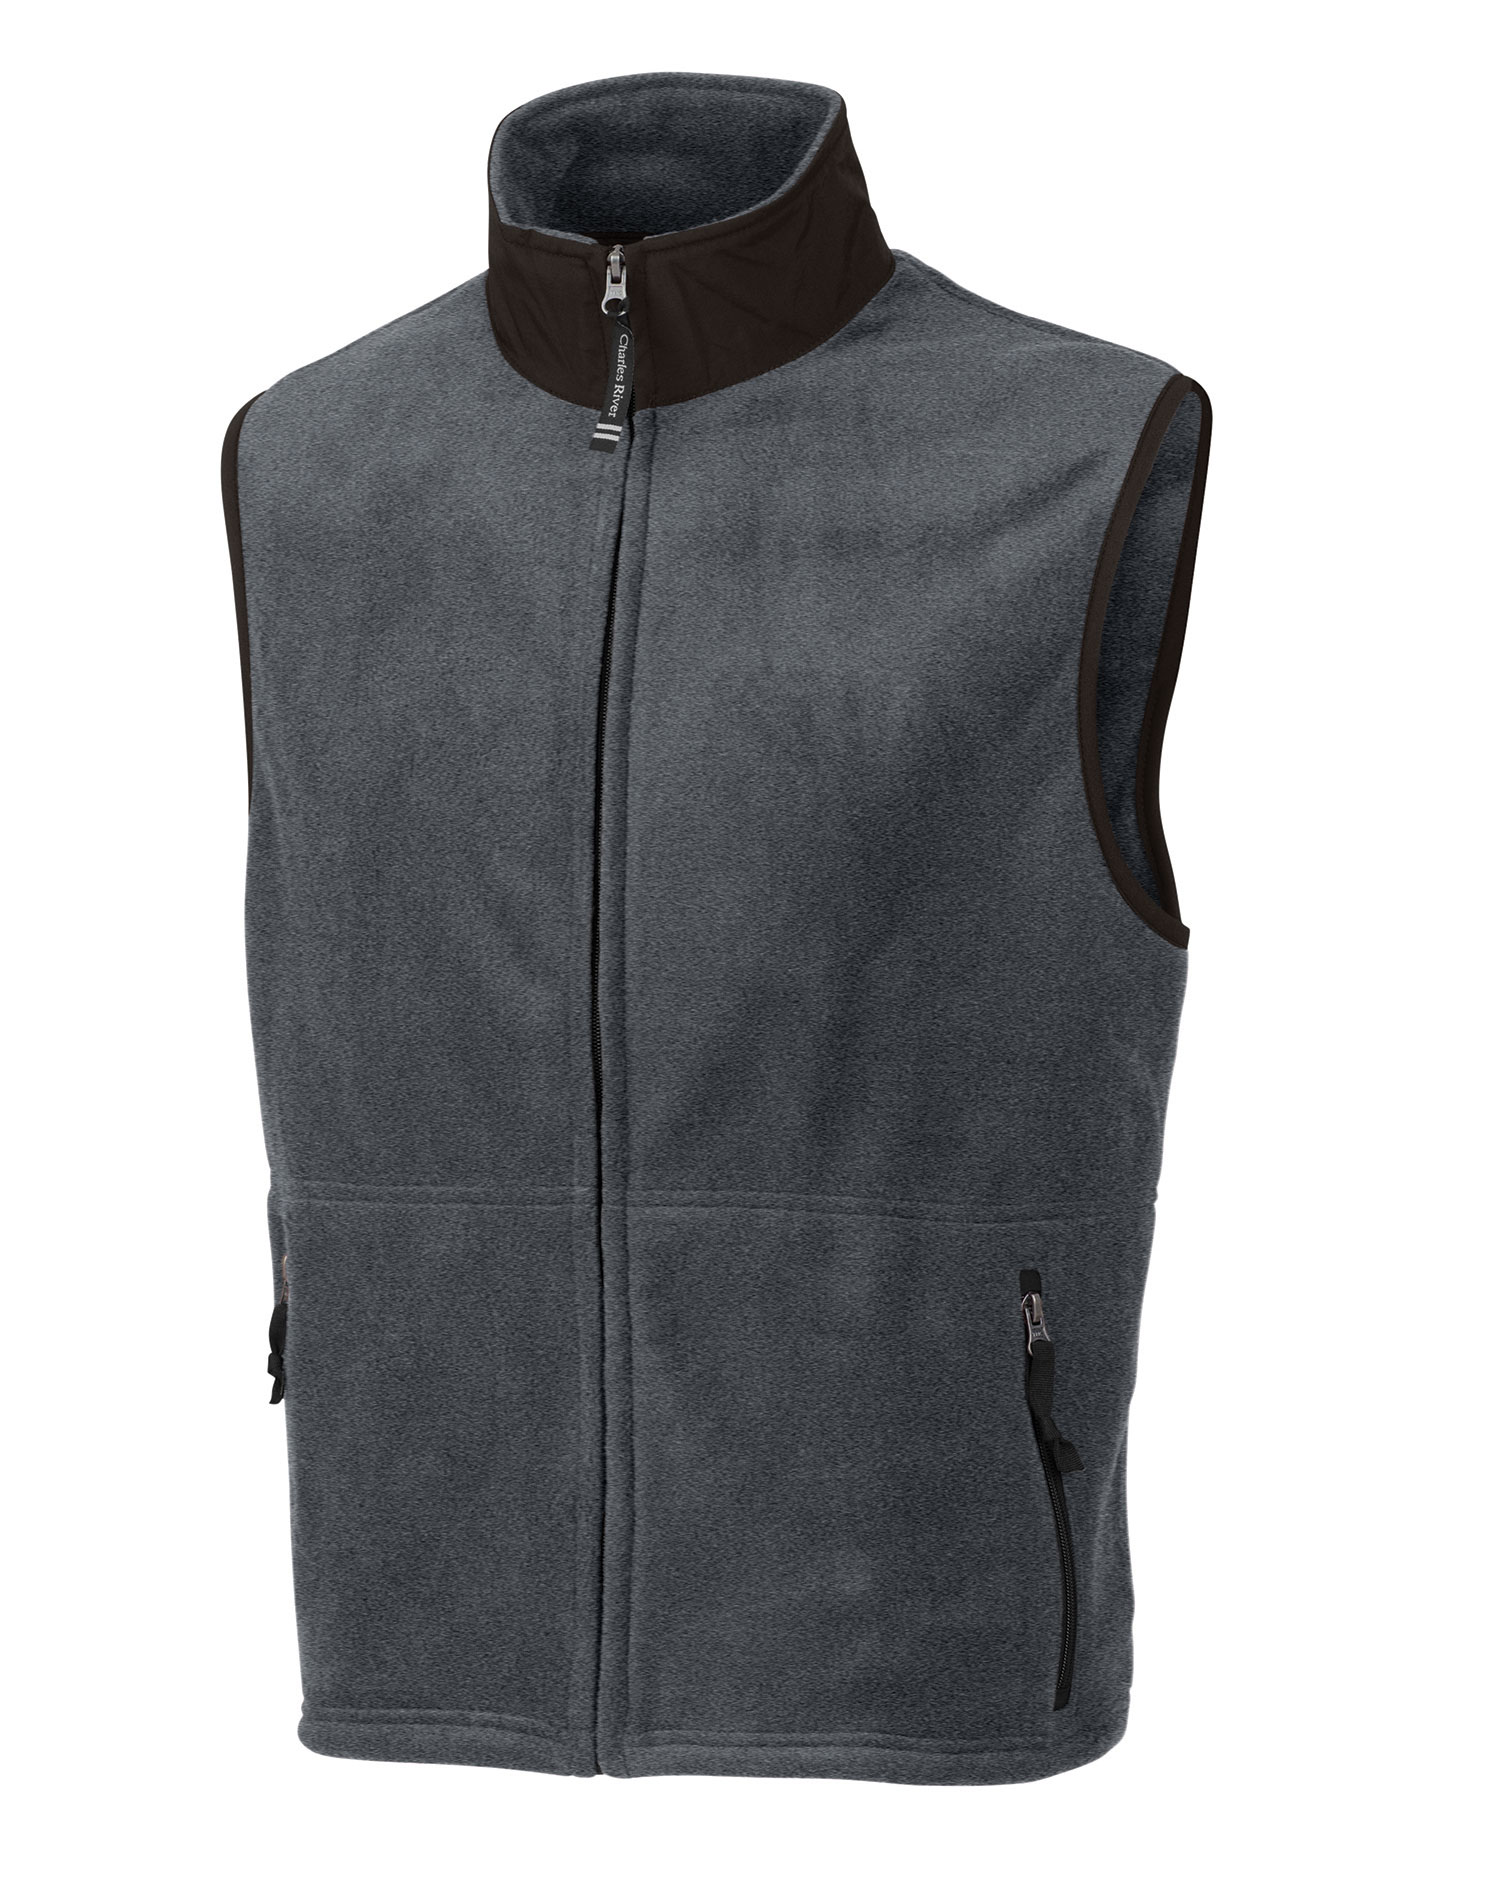 Charles River Mens Ridgeline Fleece Vest